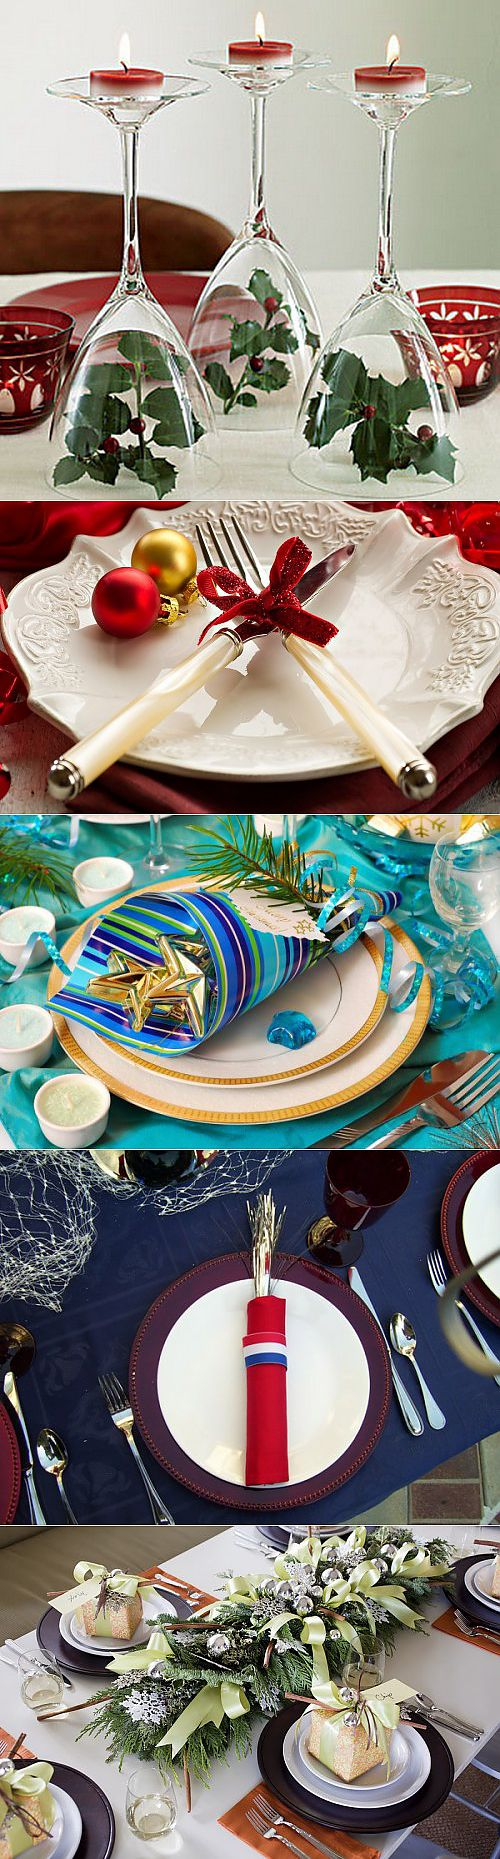 Jewelry for a New Year's table: easy ways and original ideas \/ Simple recipes